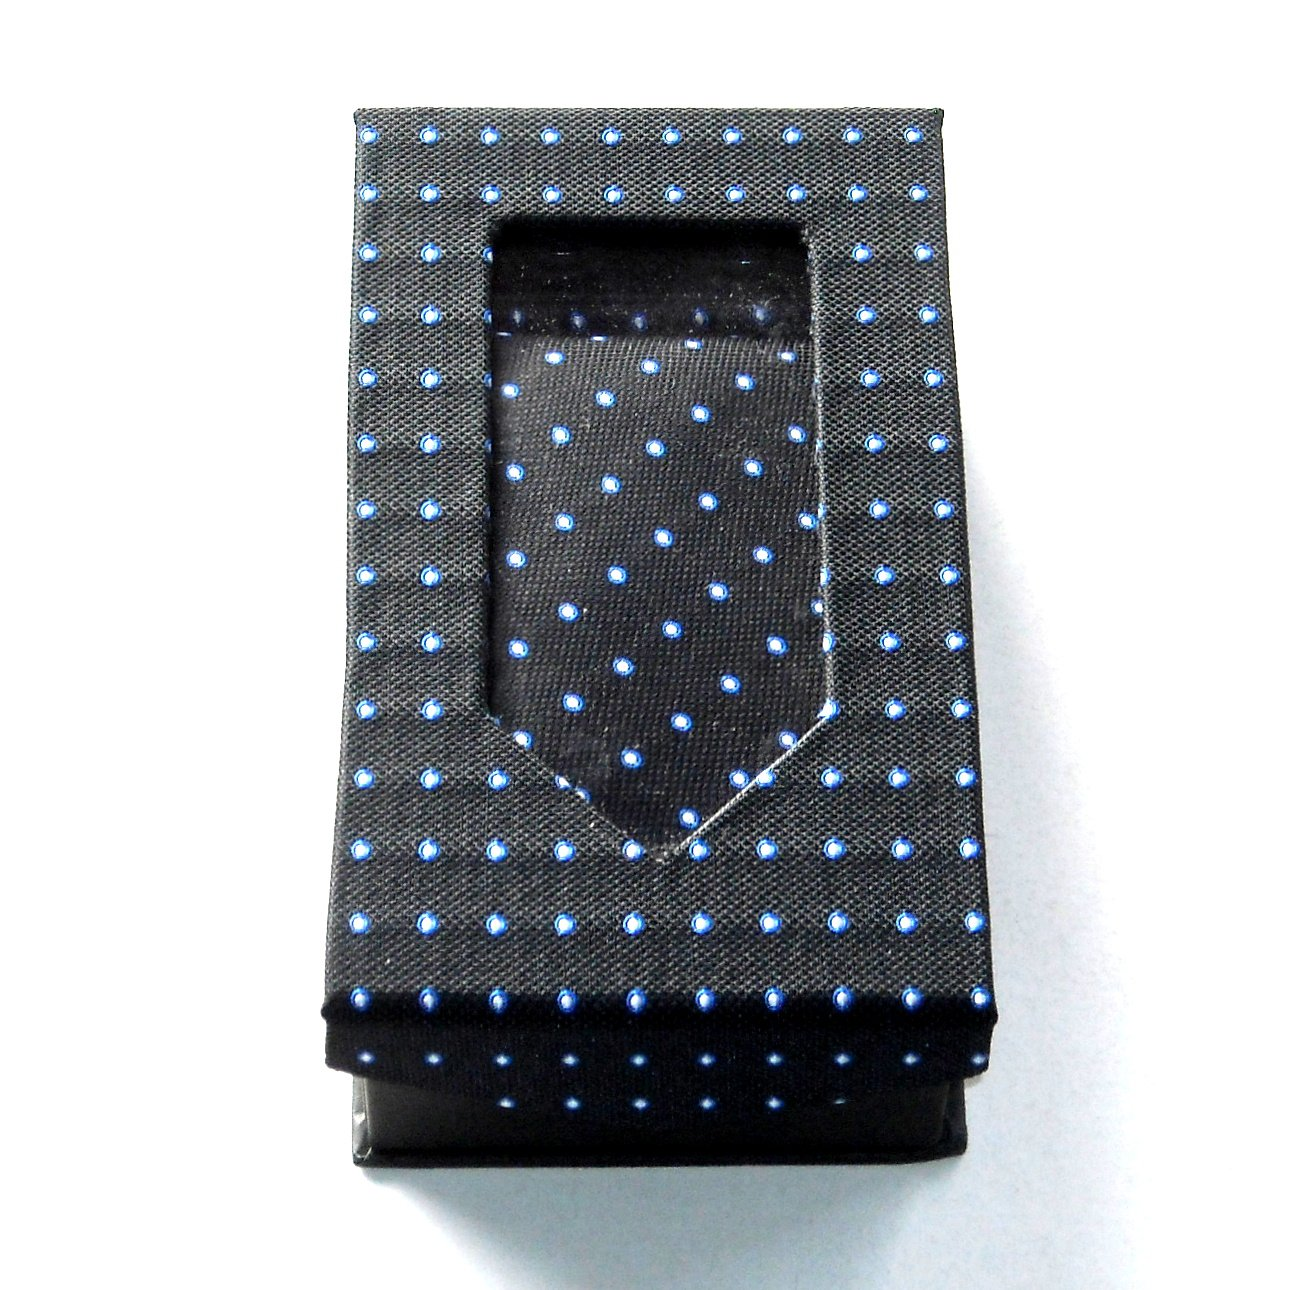 Black Tie Gift Set Boxed Handkerchief Cufflinks